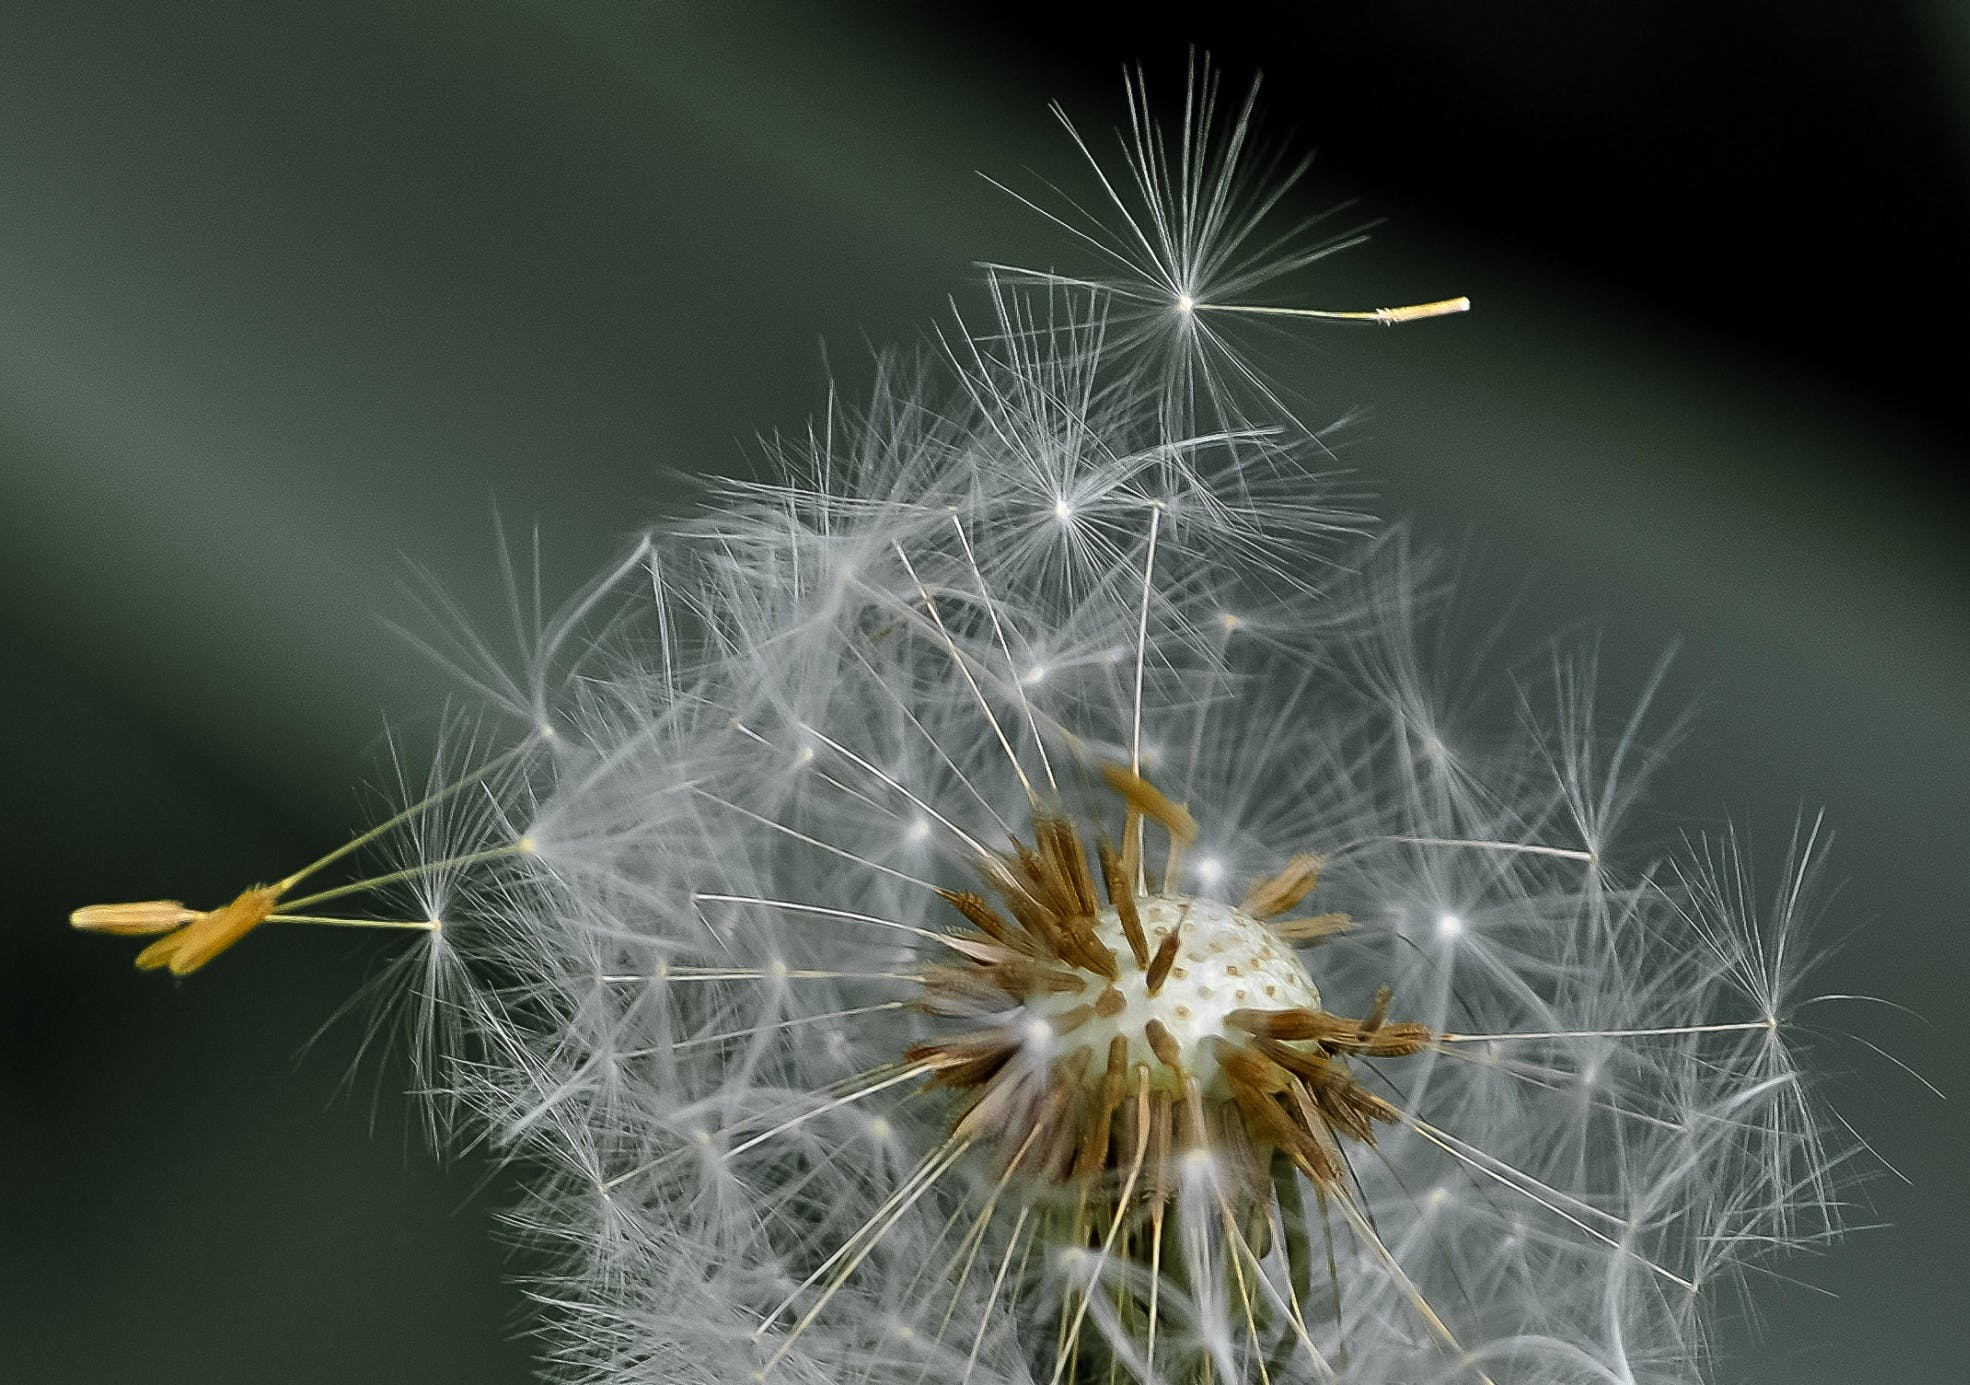 White Dandelion in Closeup Photography